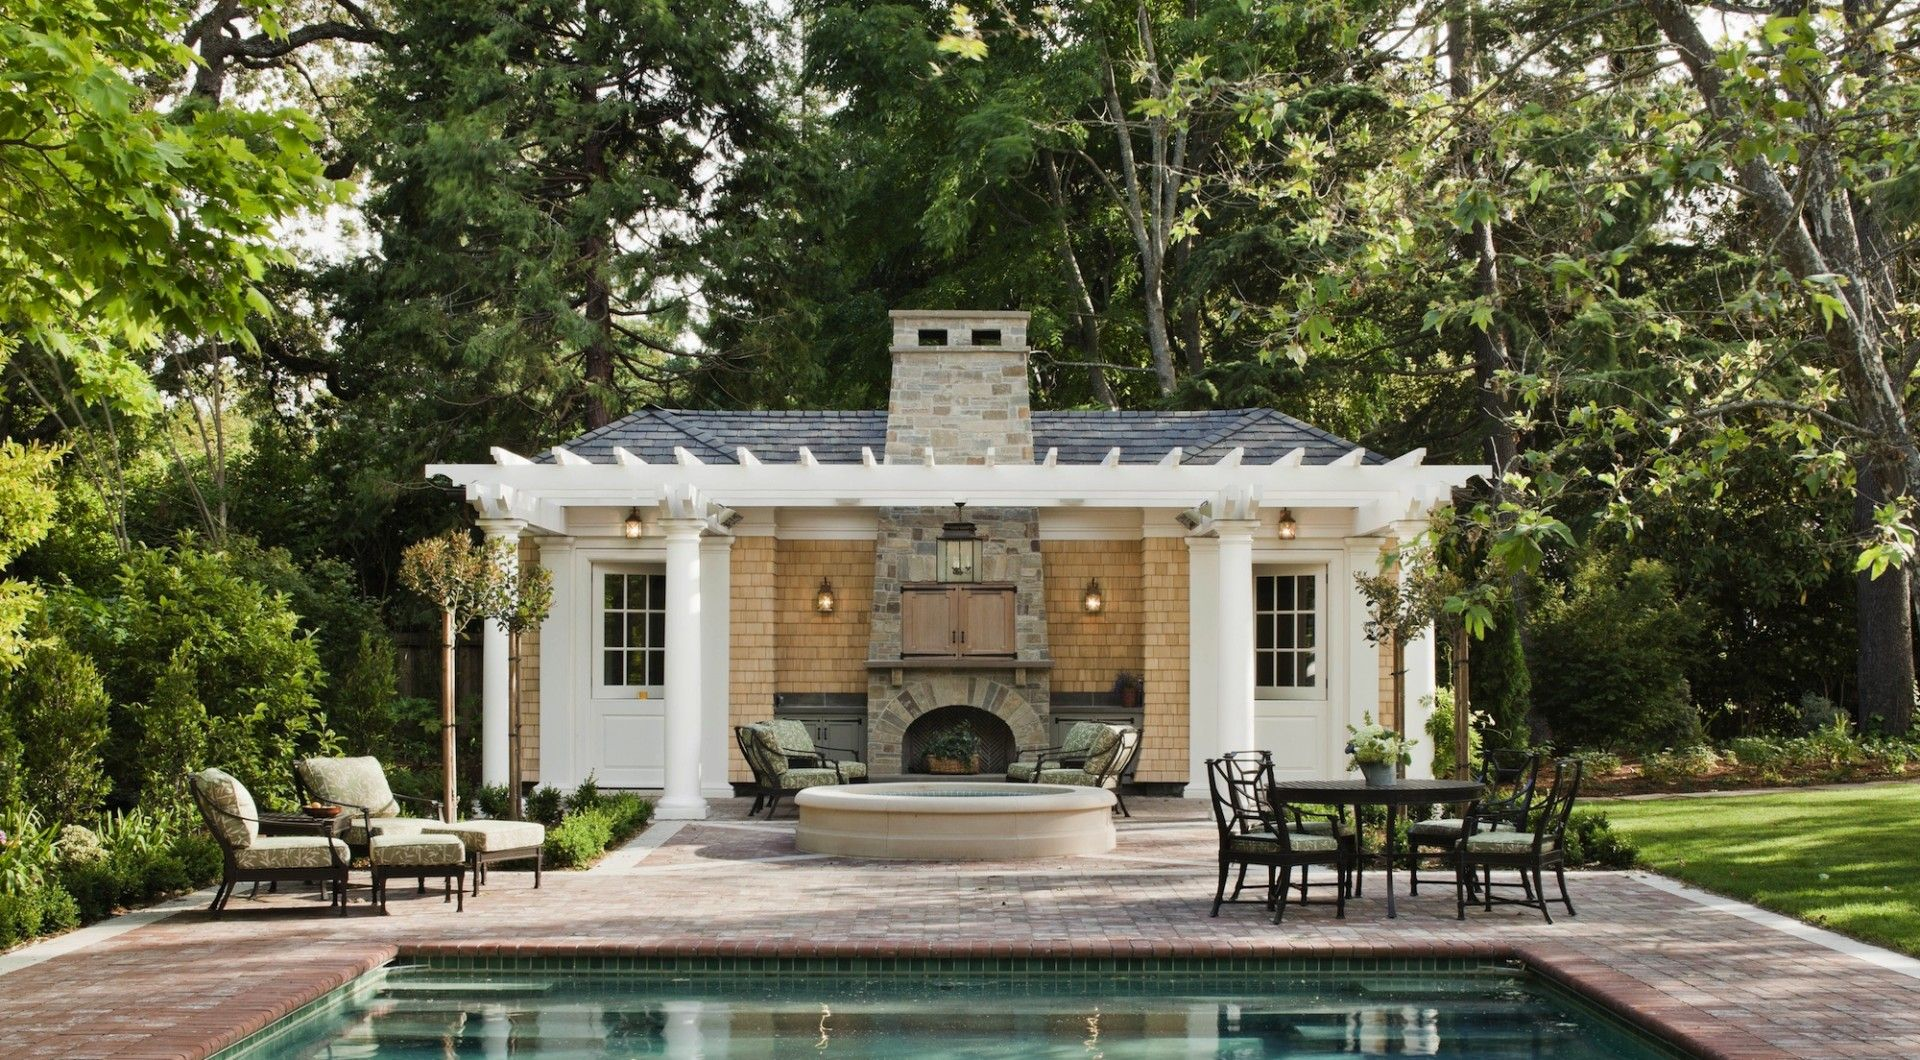 Pool House Ideas small pool house design ideas Stunning Traditional Outdoor Fireplace Pool House Designs Ideas